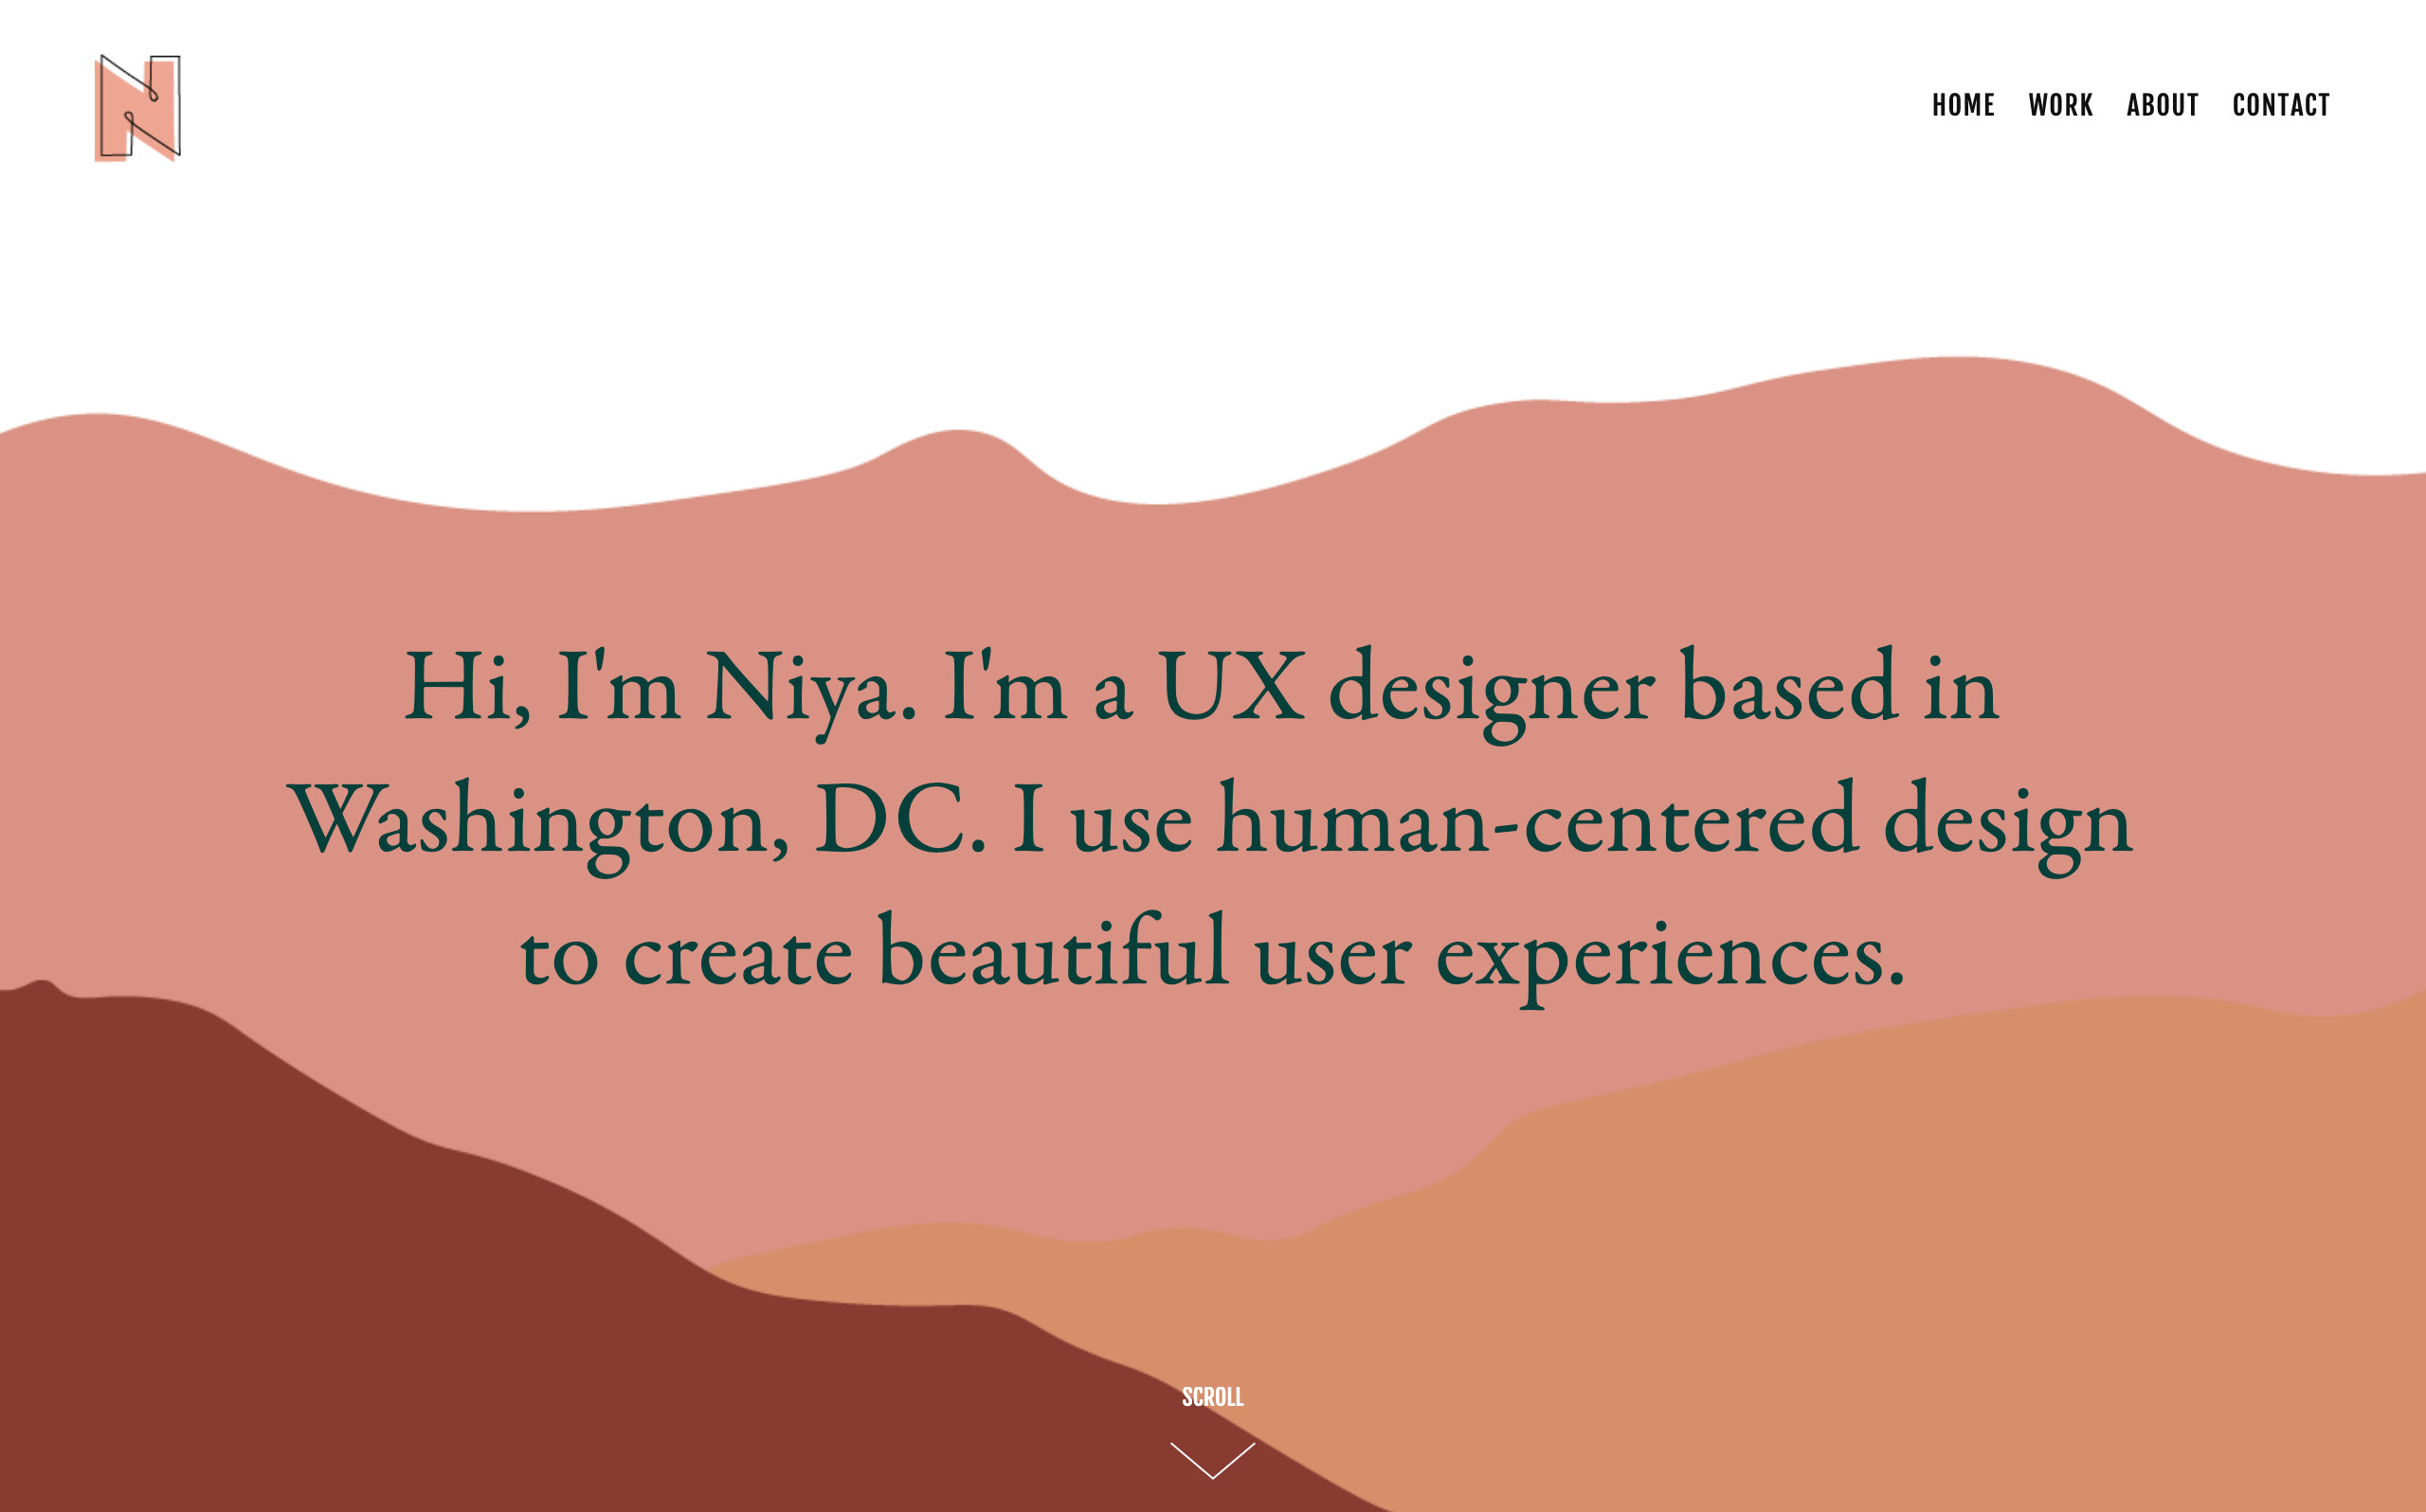 7 Impressive UX Portfolios You Haven't Seen